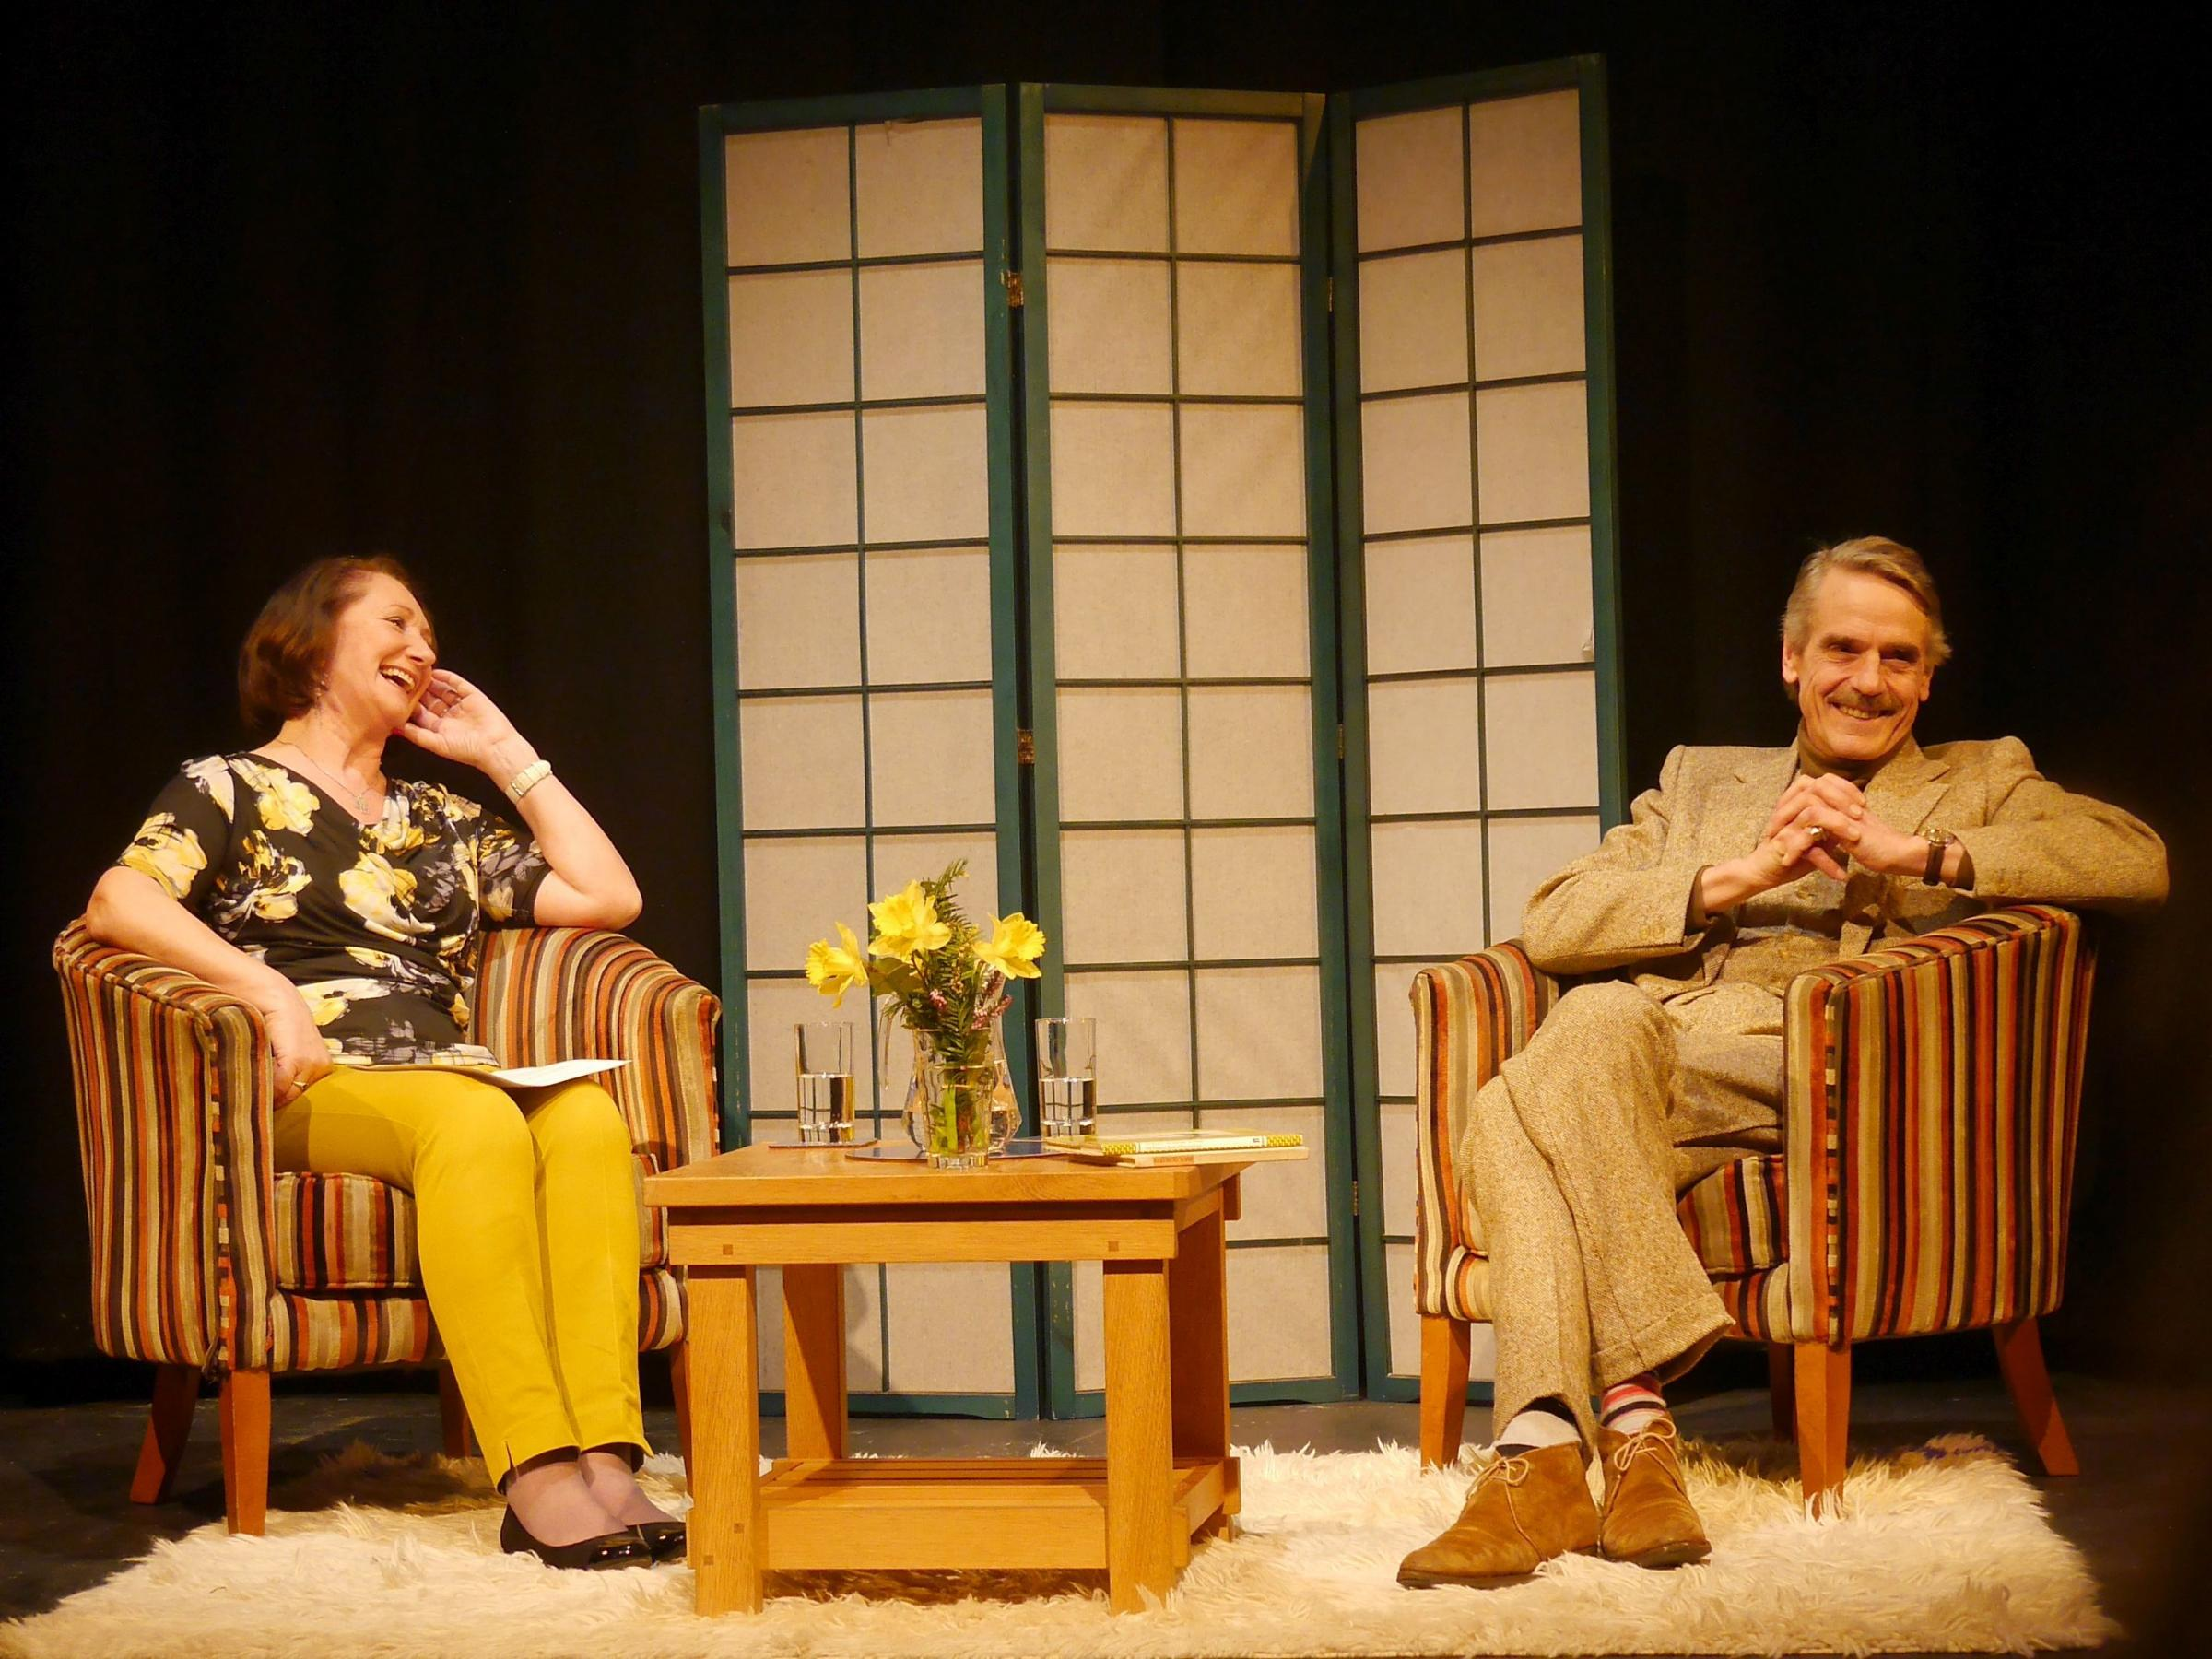 Jeremy Irons at Wallingford's Corn Exchange on March 12, 2018, with Gloria Wright of the Sinodun Players. Picture: Graham Diacon